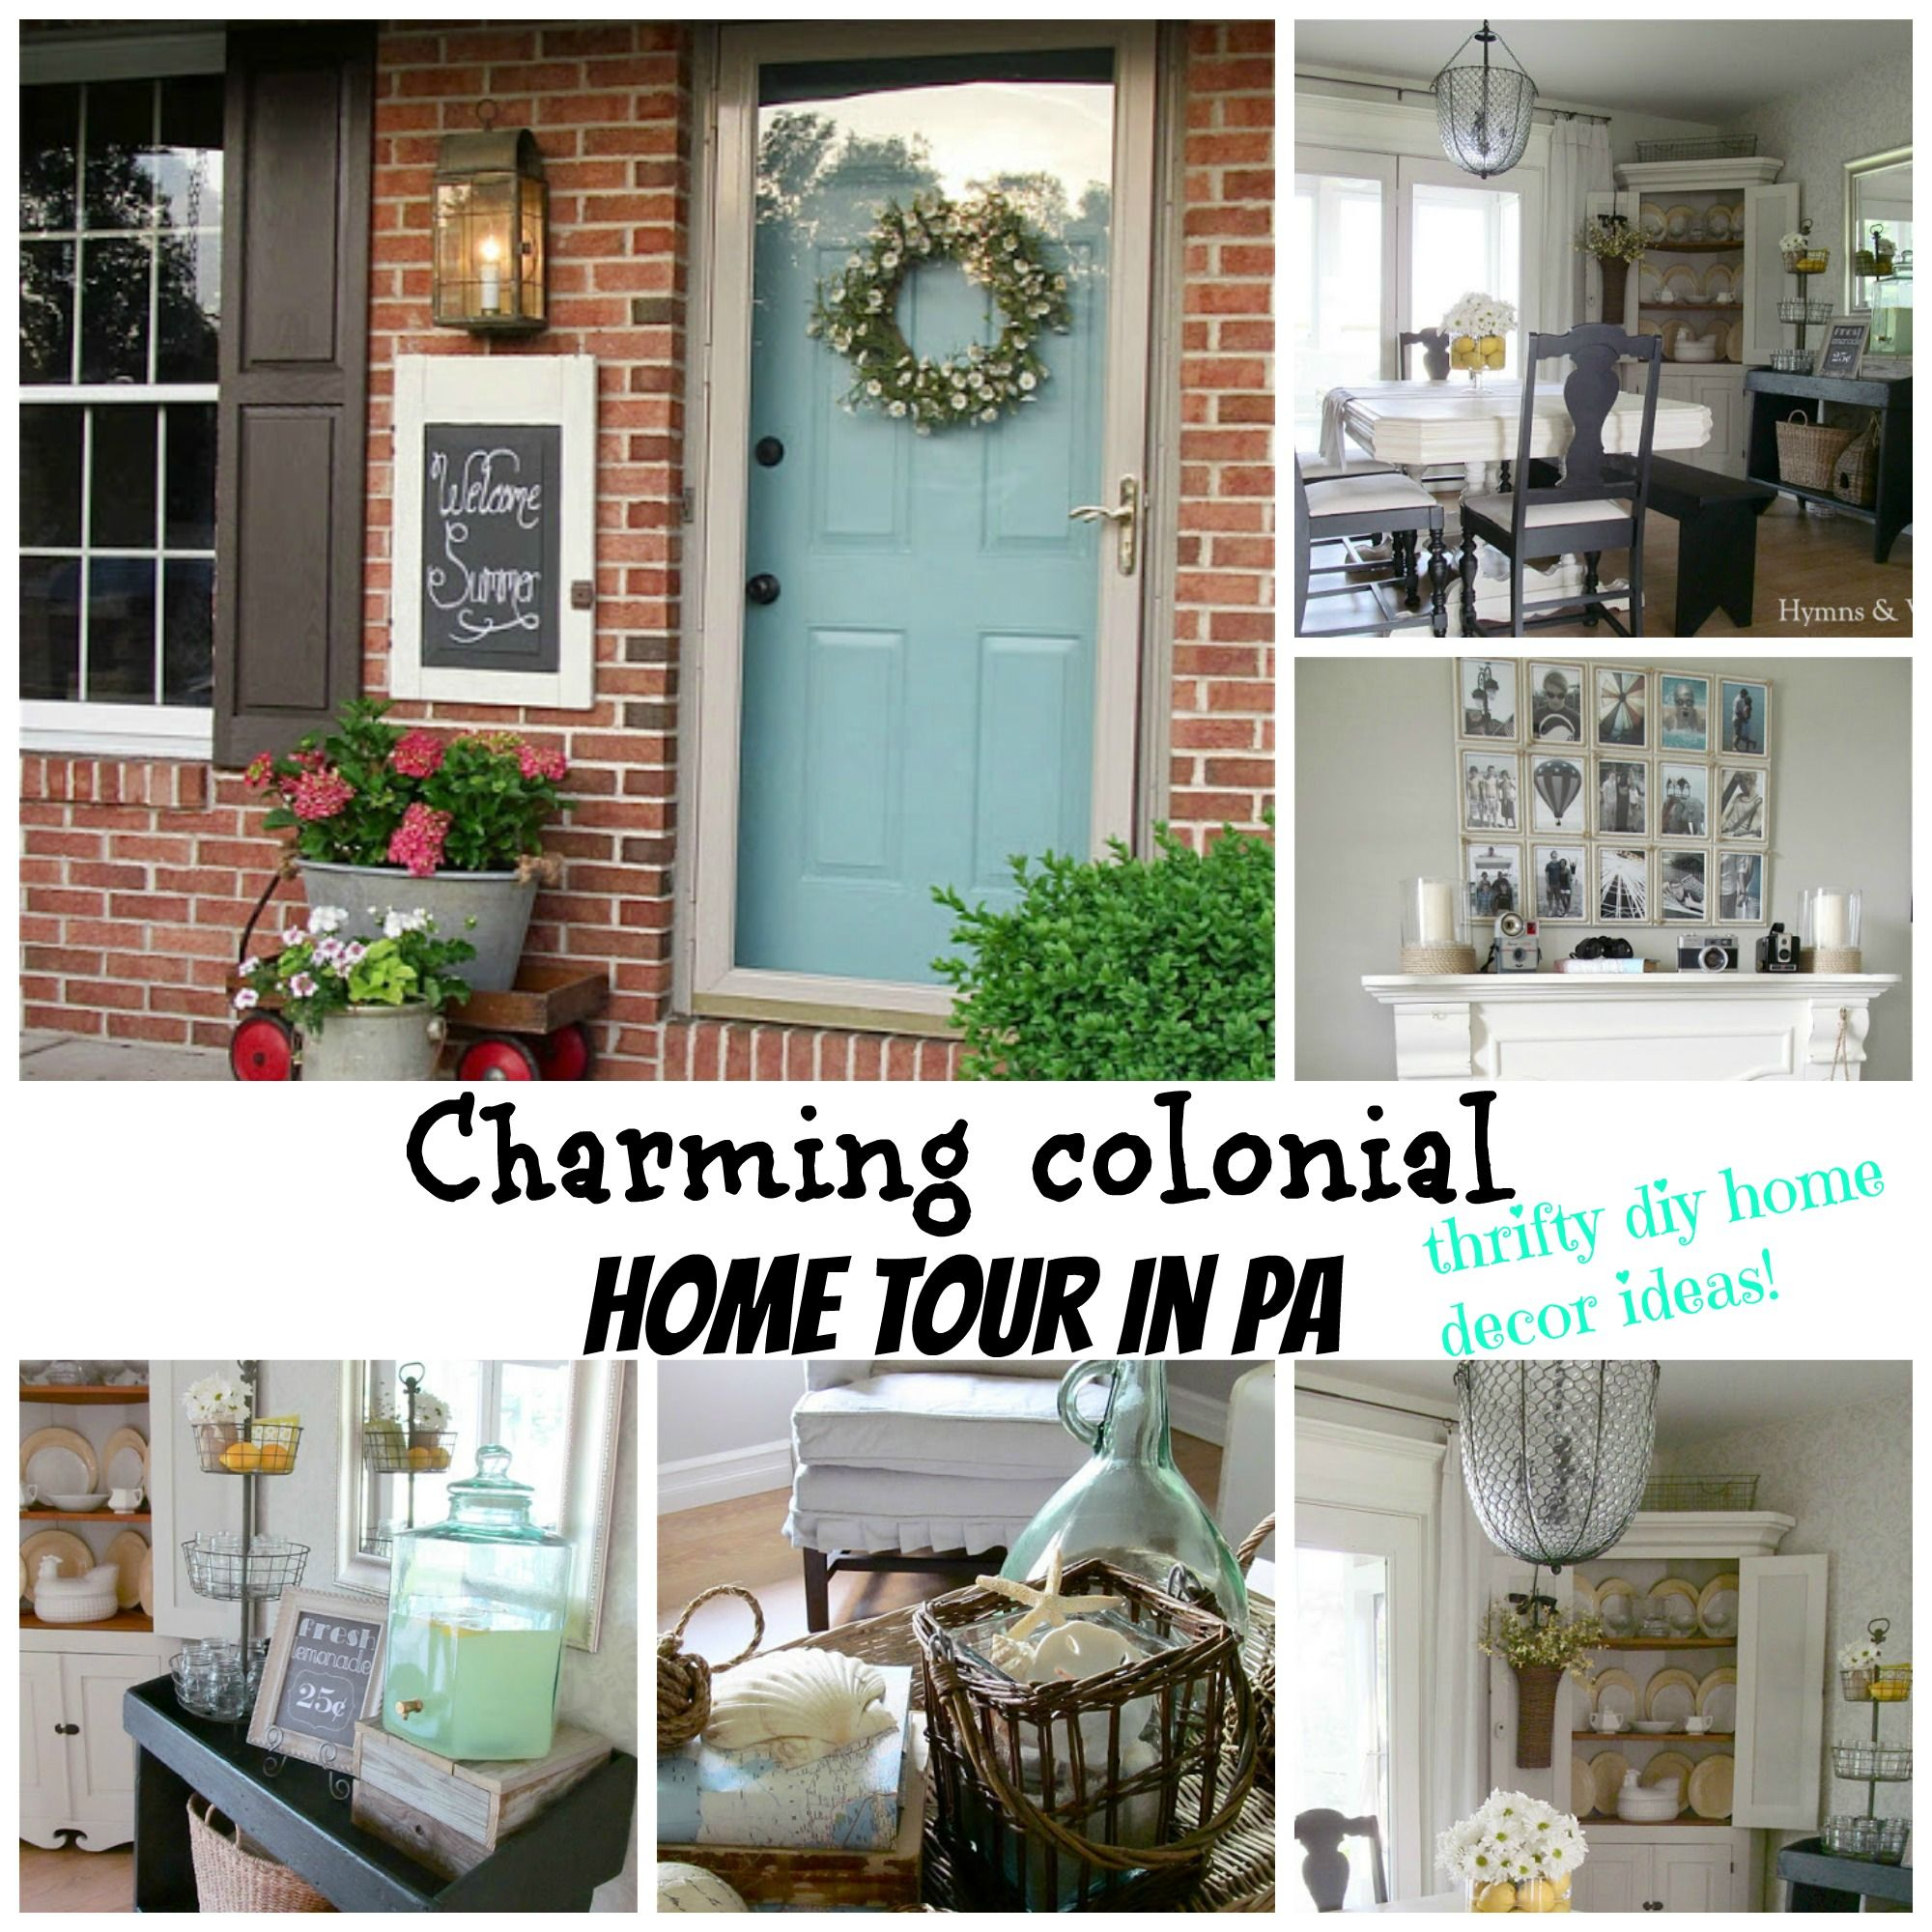 Charming Colonial Home Tour In PA. Lots Of Thrifty Home Decor Diy Ideas